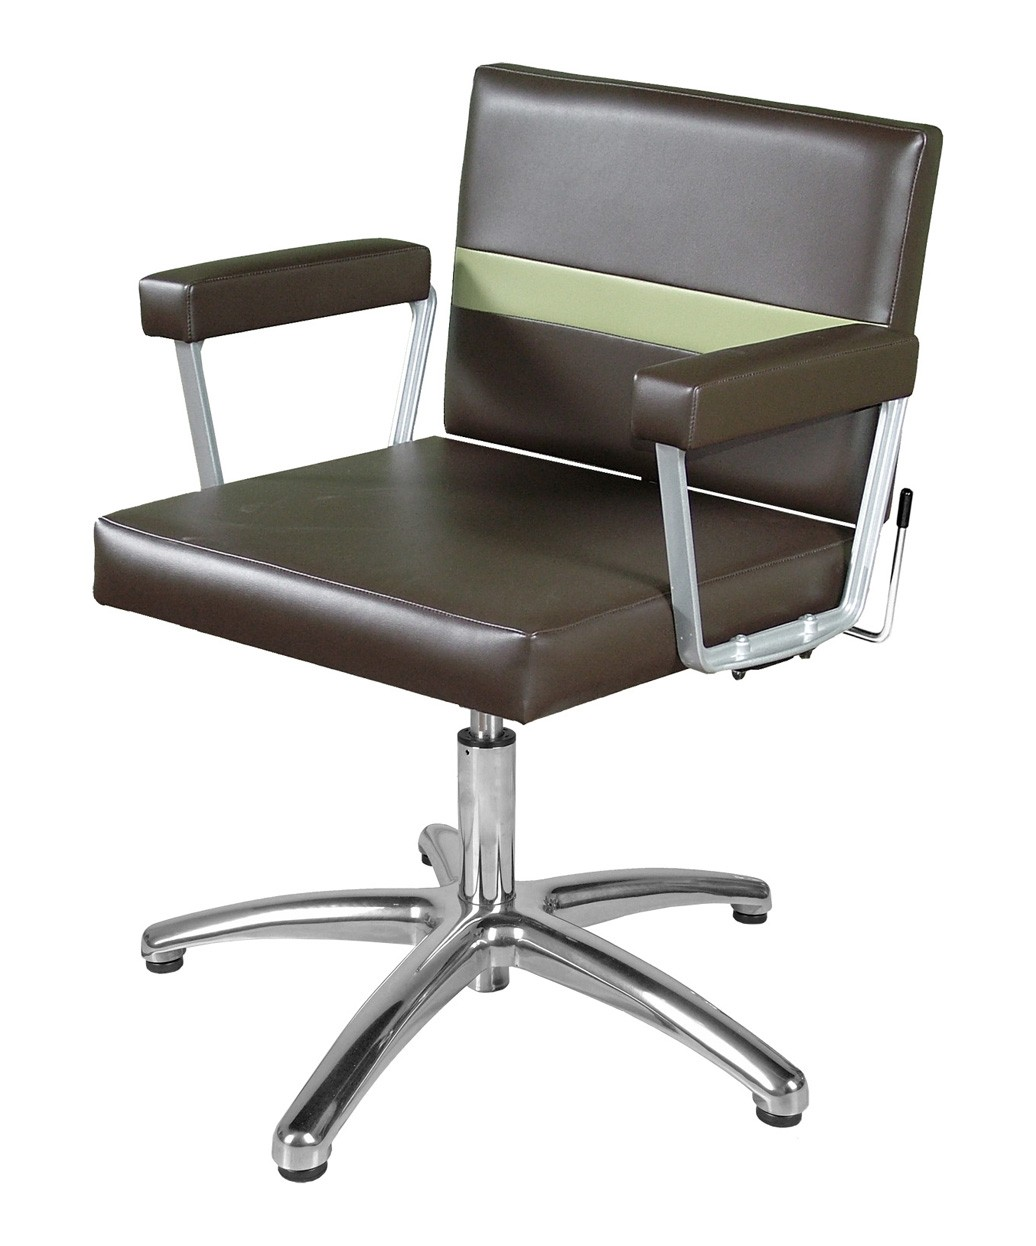 9830L Taress Leve-Control Shampoo Chair